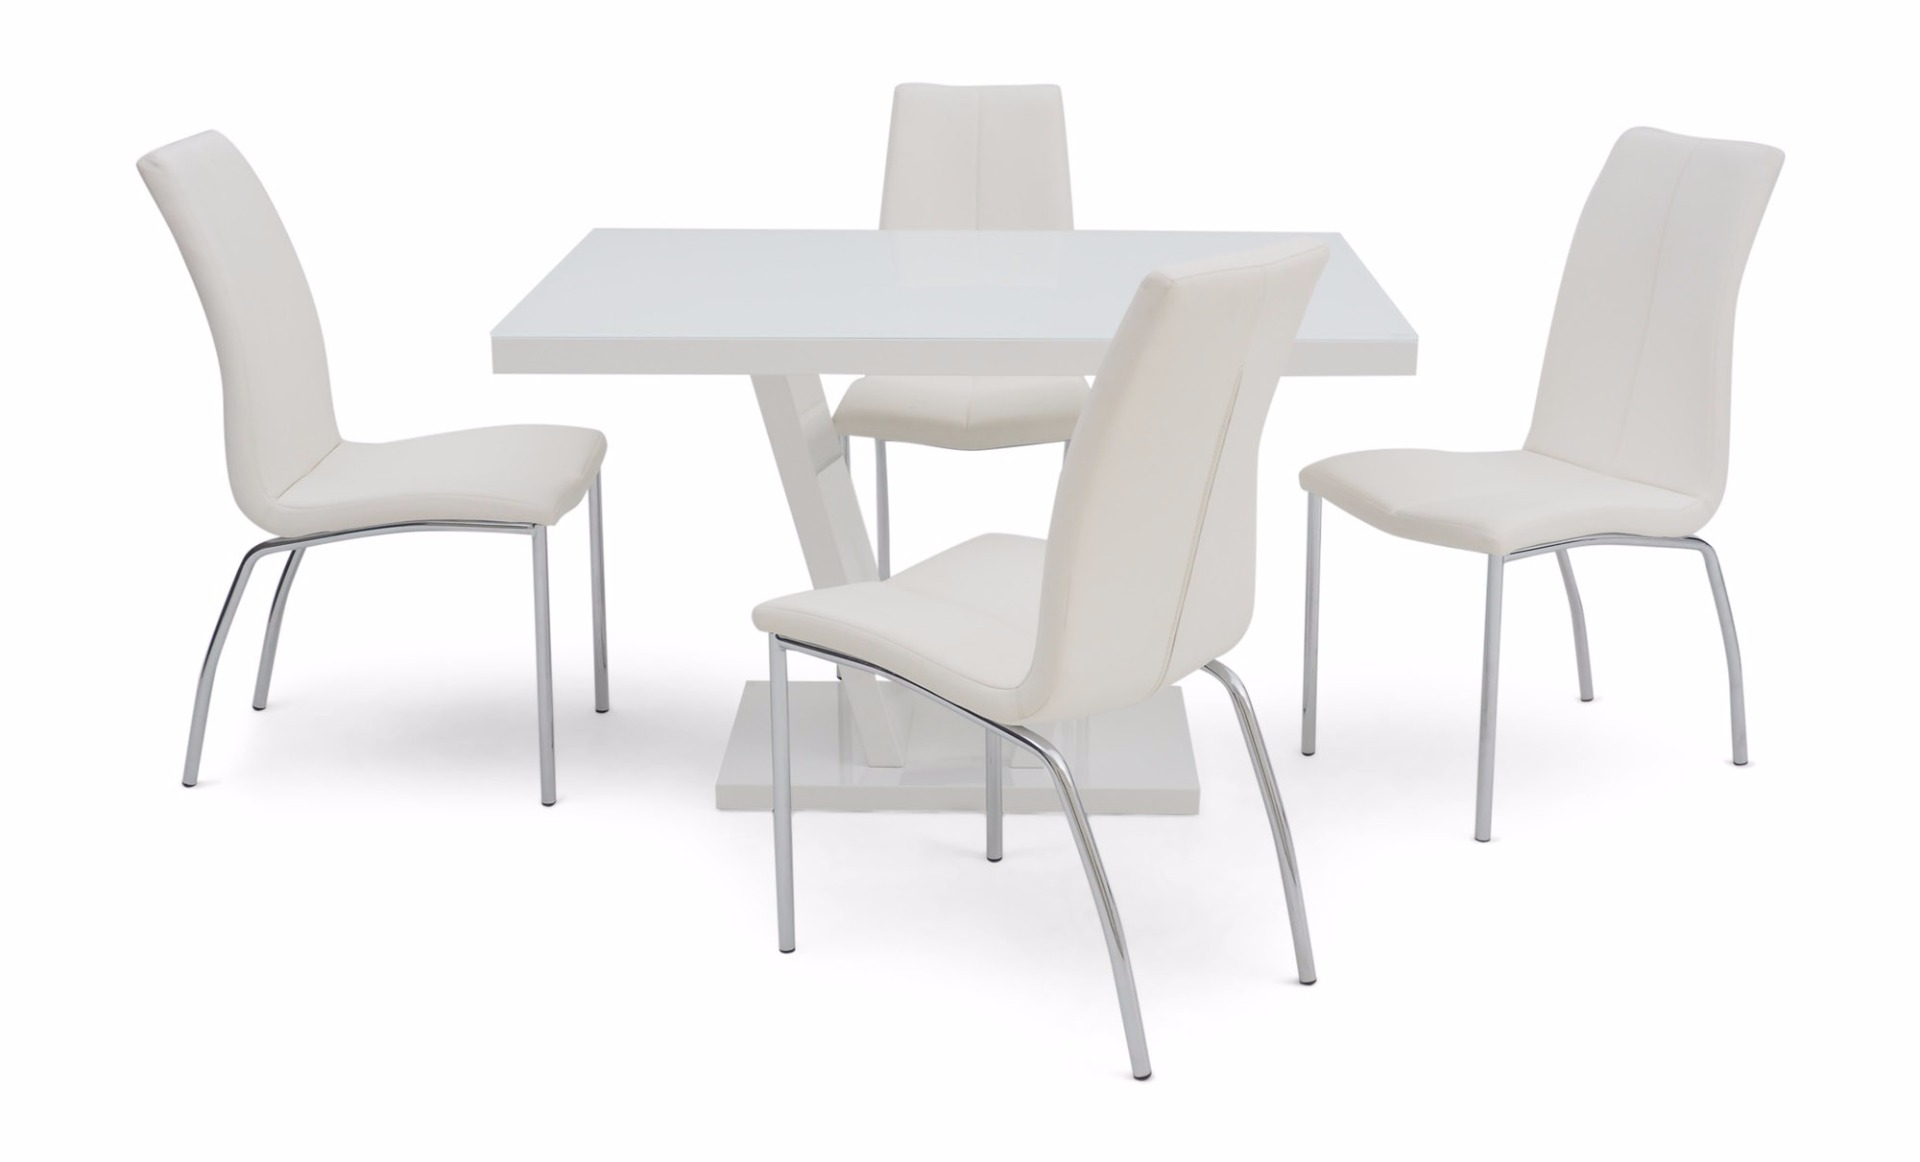 https://www.firstfurniture.co.uk/pub/media/catalog/product/f/a/fairmont_valentino_white_high_gloss_dining_table_4_ava_black_chairs_1.jpg